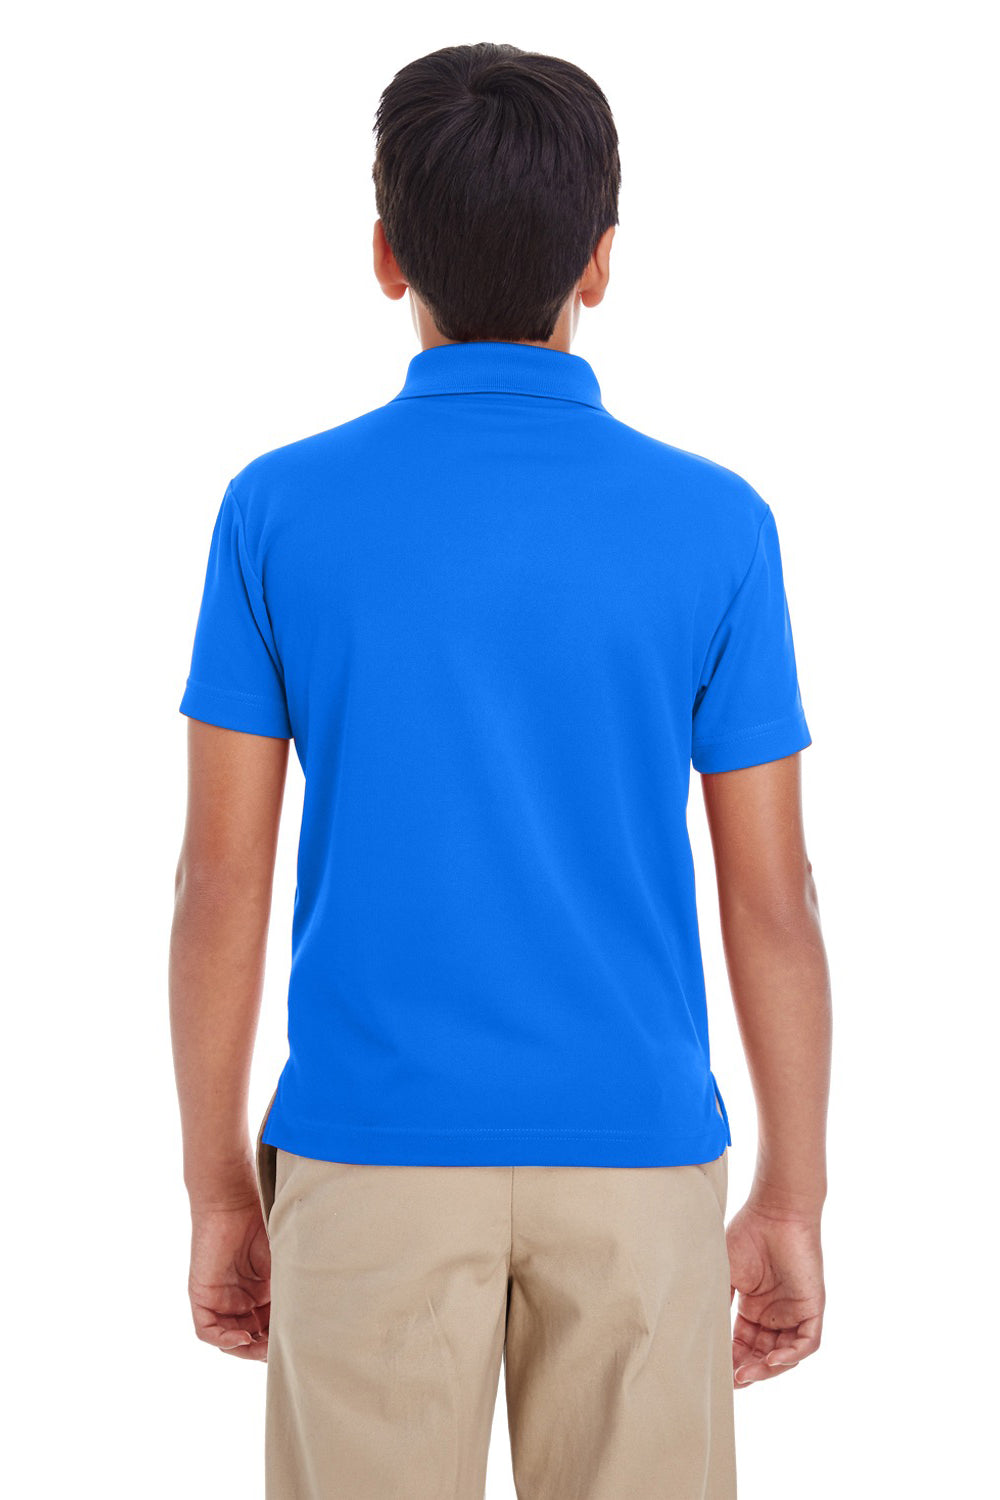 Core 365 88181Y Youth Origin Performance Moisture Wicking Short Sleeve Polo Shirt Royal Blue Back